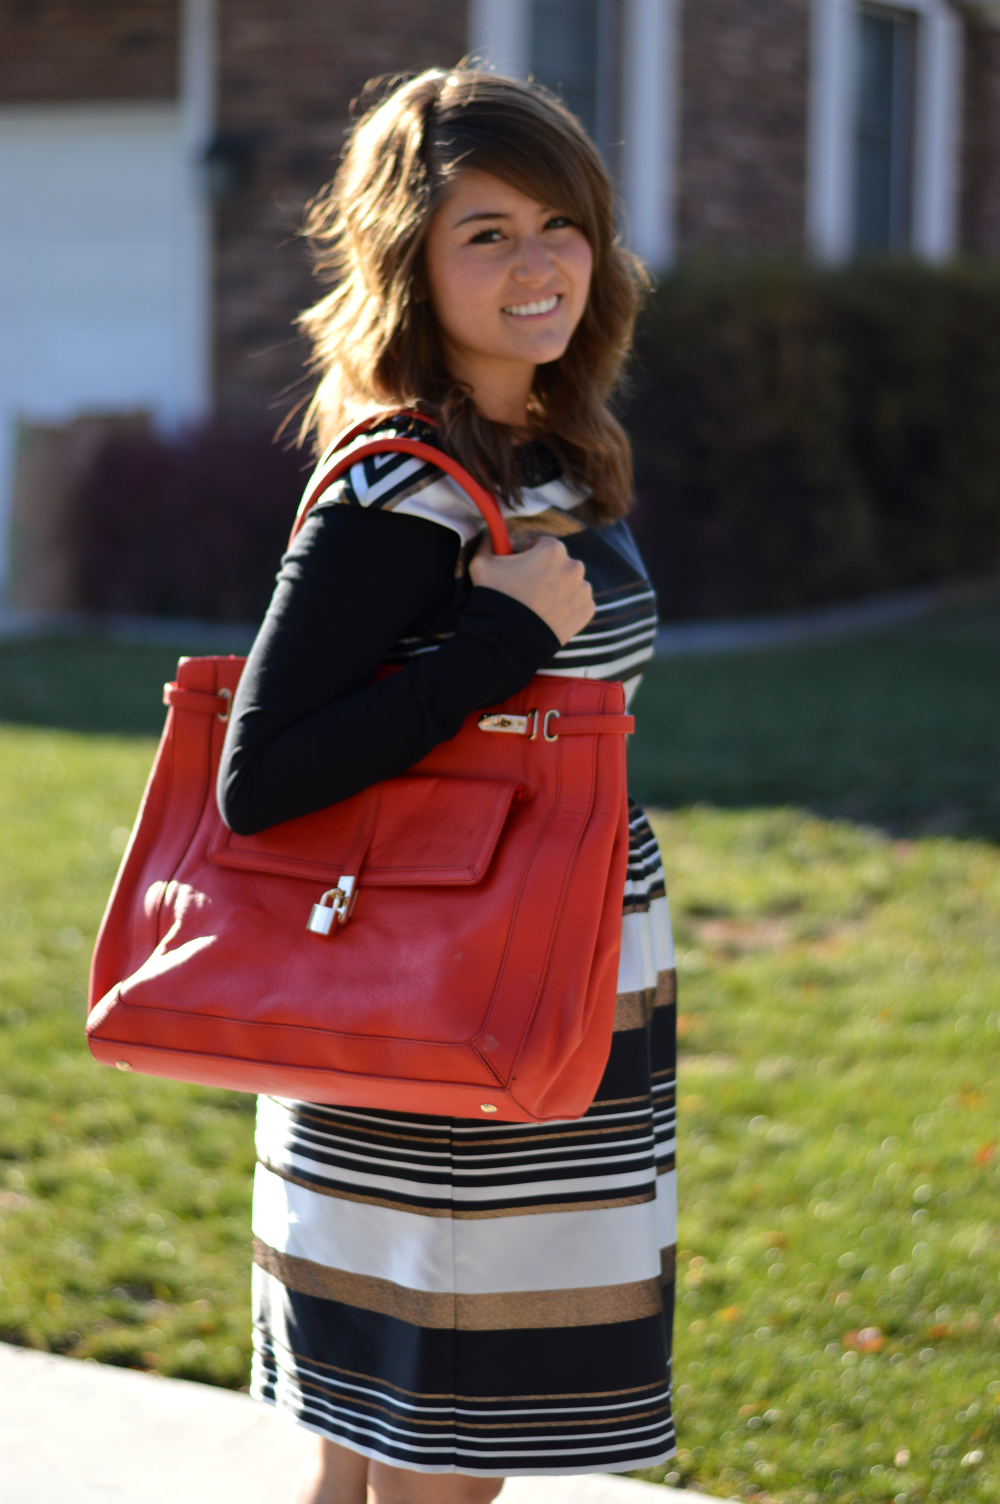 Black dress with red bag -  Inspiration I Think That The Neutral Black White And Gold In The Dress From Ivy Blu Go Well With The Bright Holiday Red Bag From Sole Society